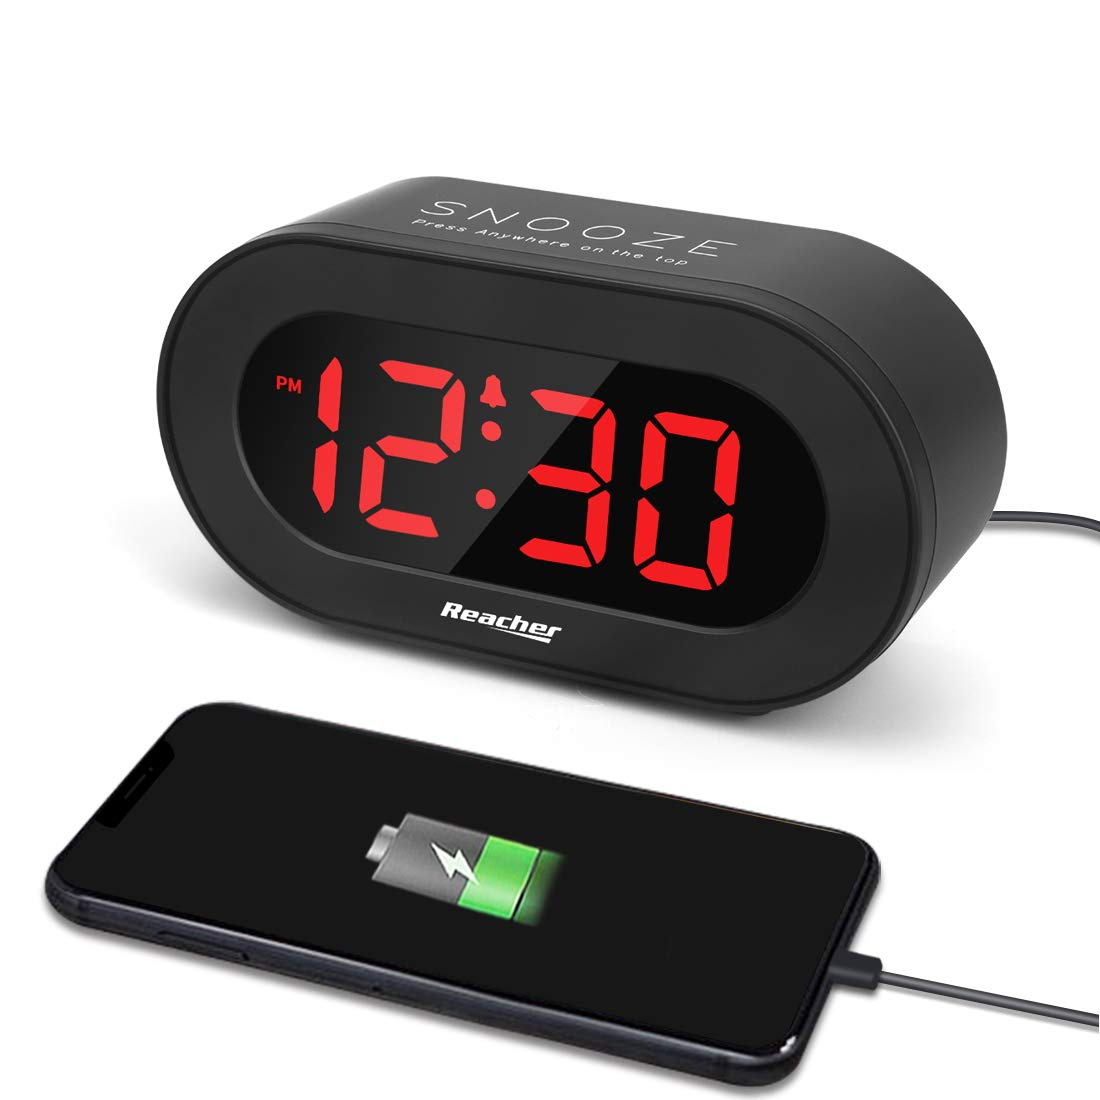 (A1C1)Small LED Digital Alarm Clock with Simple Operation